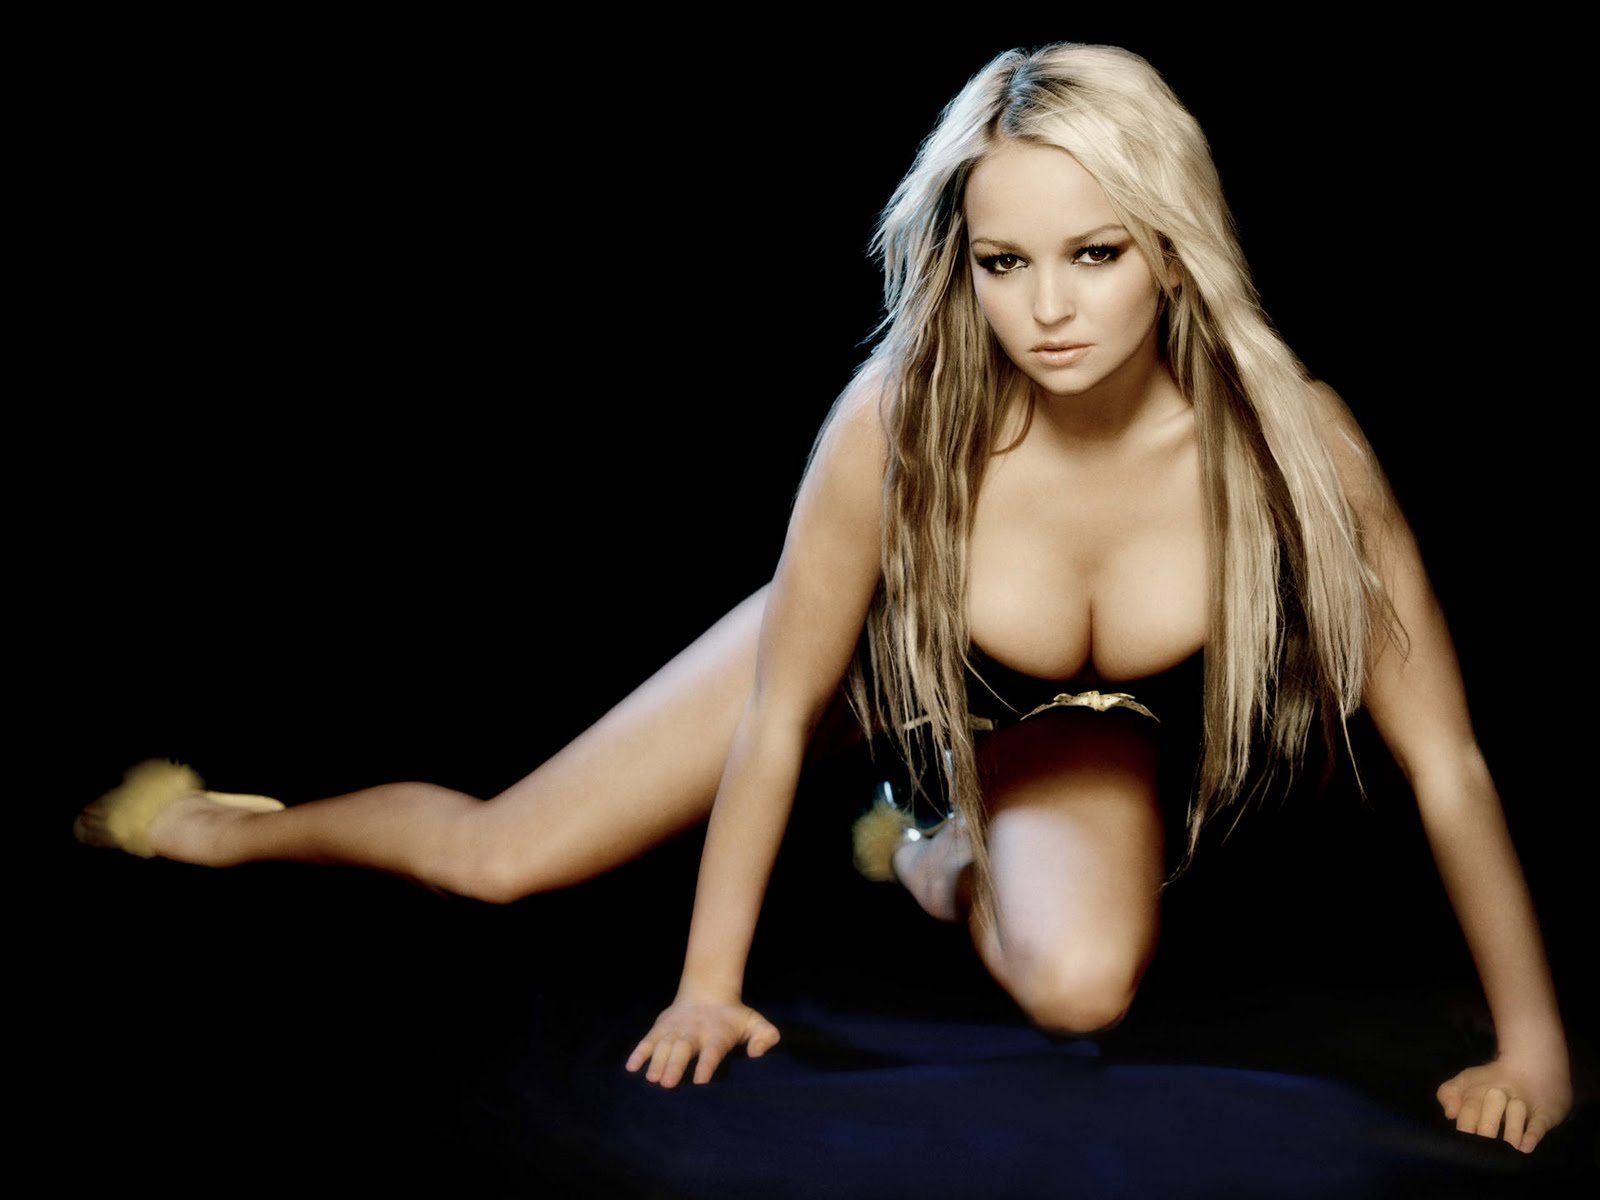 Bollywood images jennifer ellison very hot photos for Hot n hot fish club